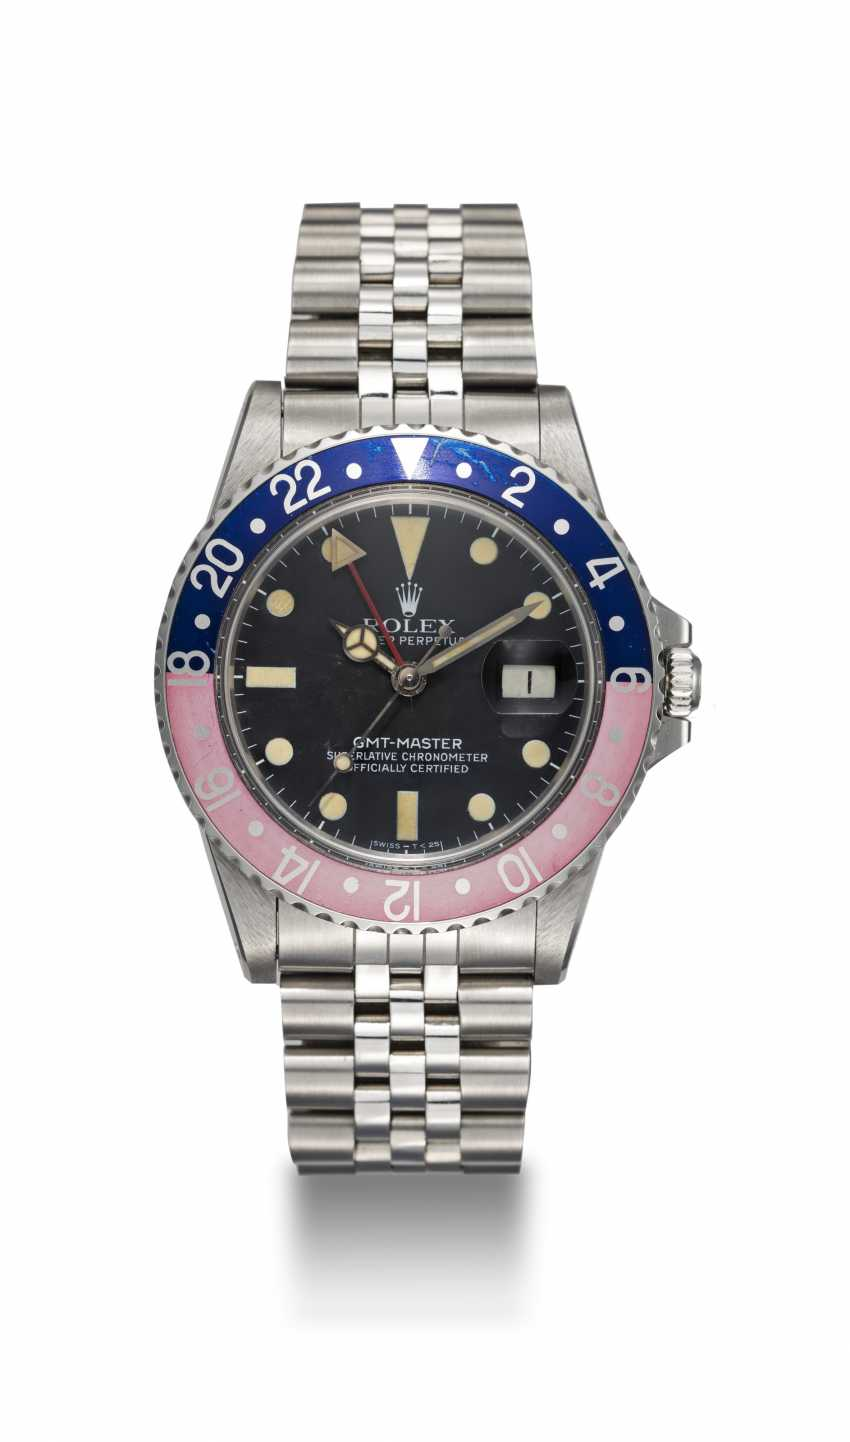 ROLEX, A STAINLESS STEEL OYSTER PERPETUAL GMT-MASTER, REF. 16750 - photo 3